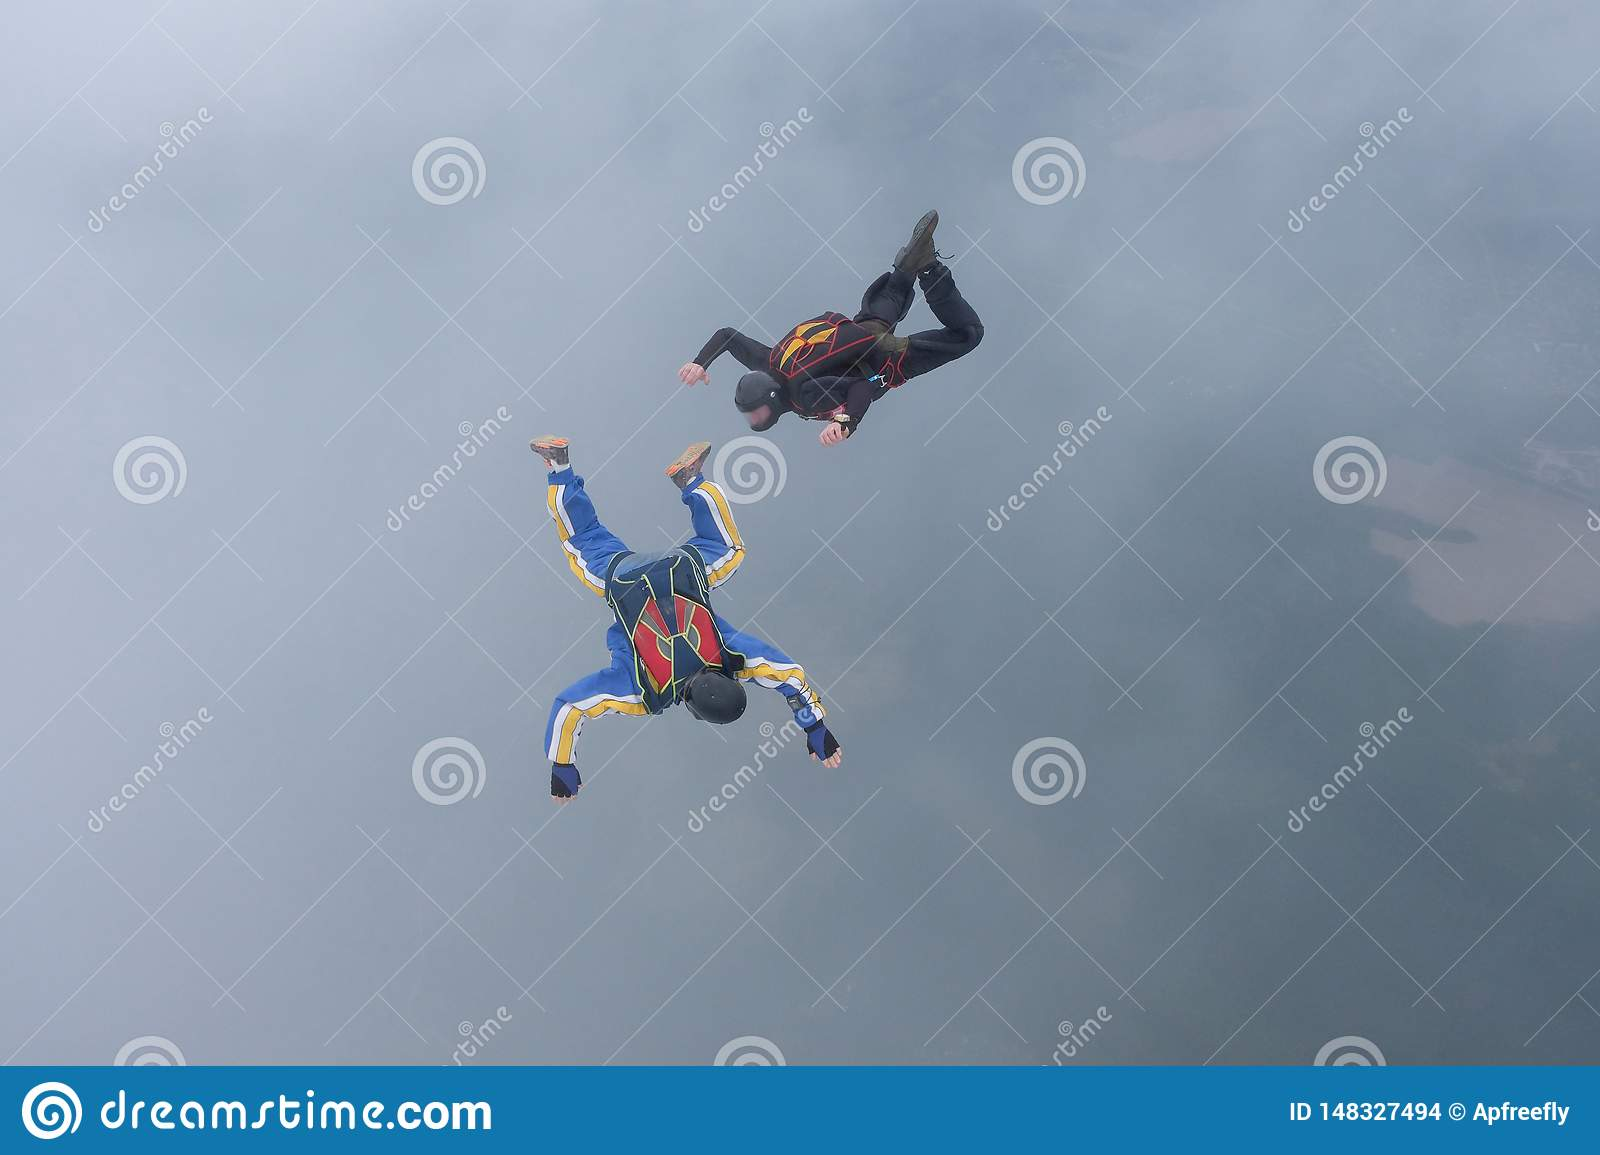 Skydiving Dois skydivers s?o flyingin o c?u